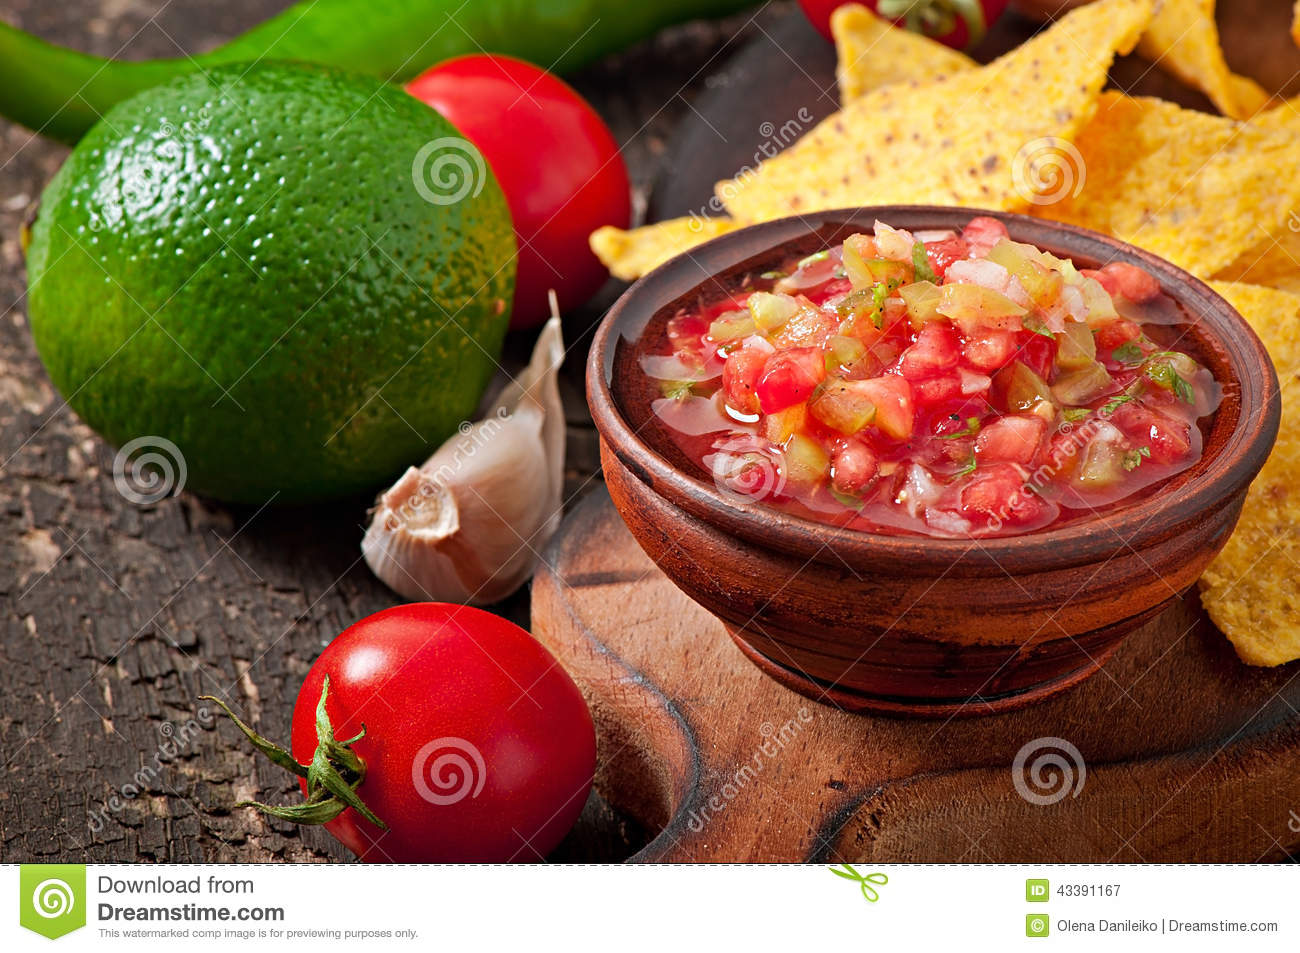 Puces de nacho et immersion mexicaines de Salsa